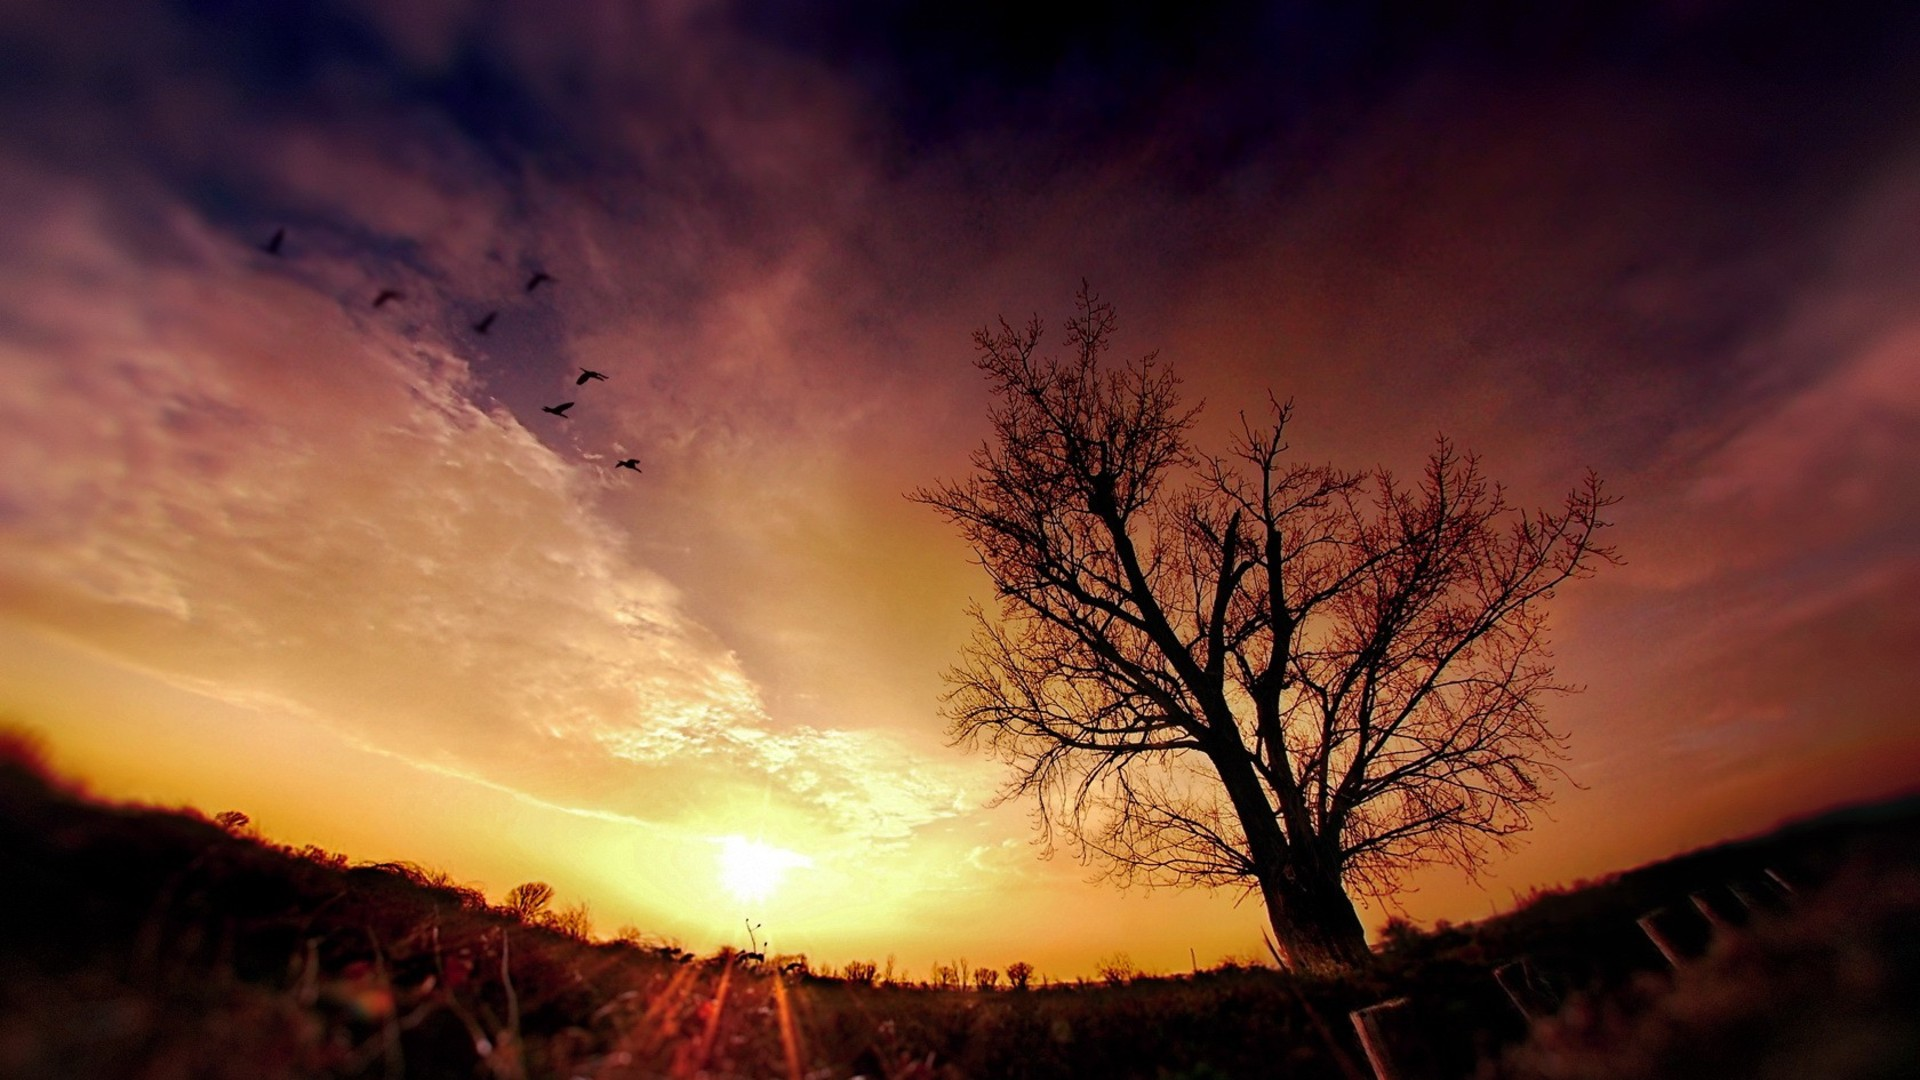 Tons of awesome background images nature dark to download for free. Cool Photography Backgrounds   PixelsTalk.Net